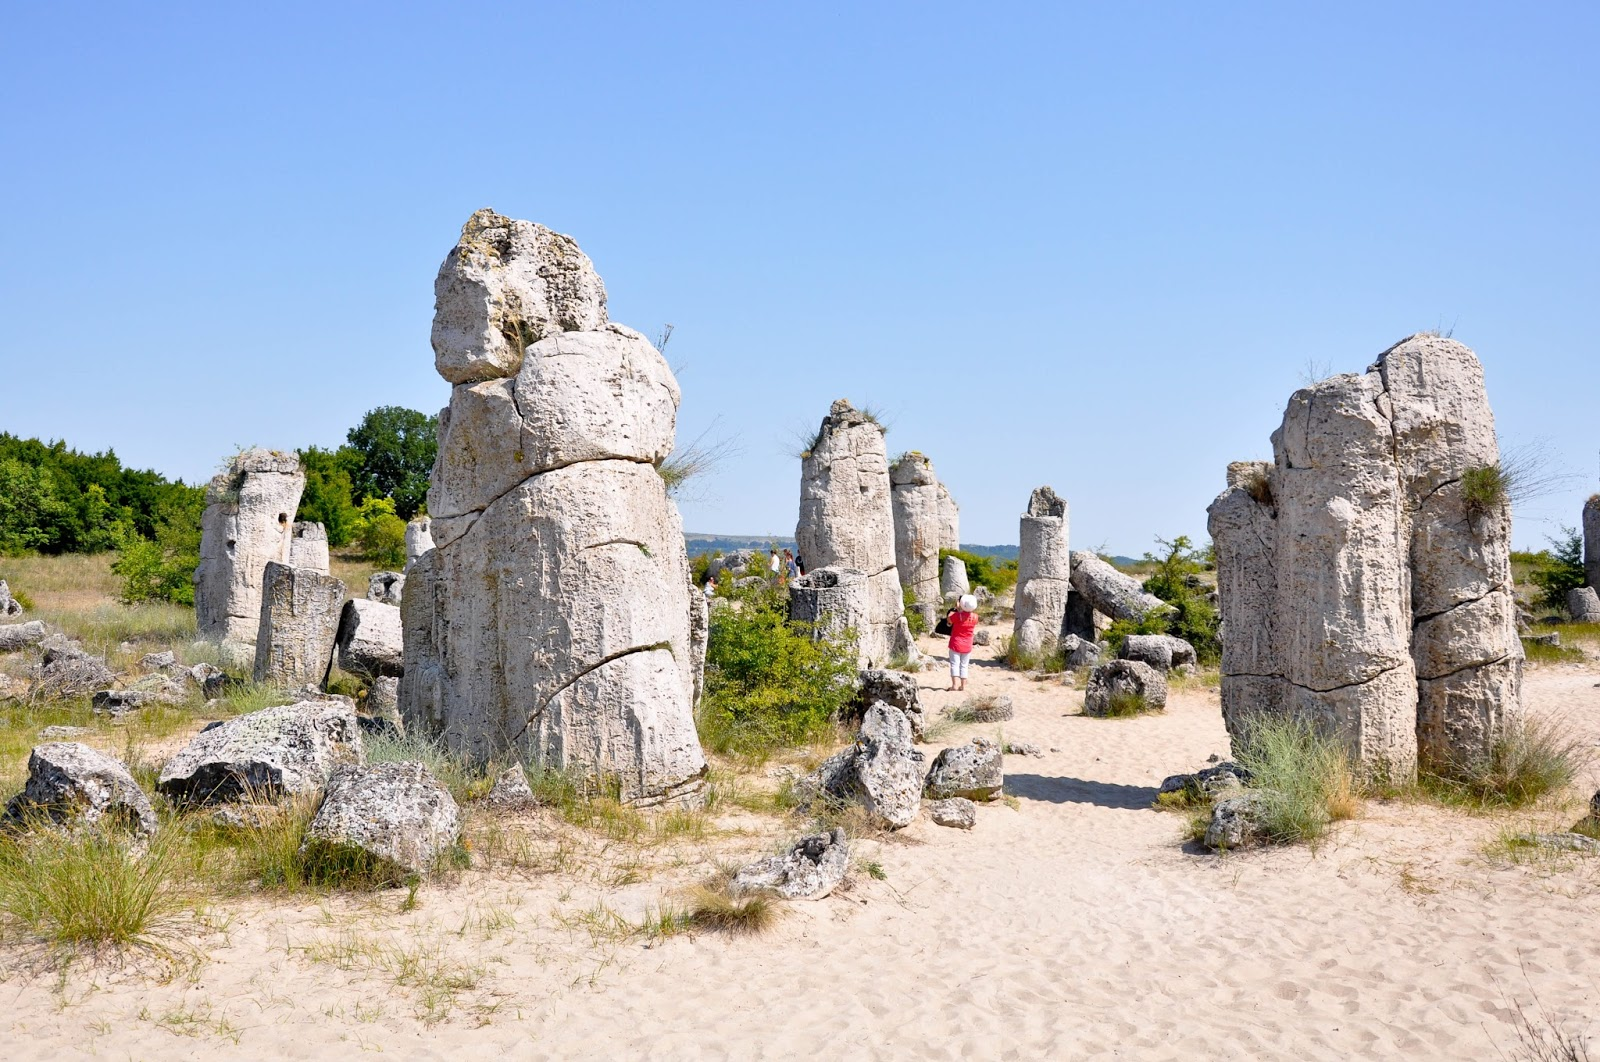 Among the stone pillars, The Stone Forest, Varna, Bulgaria